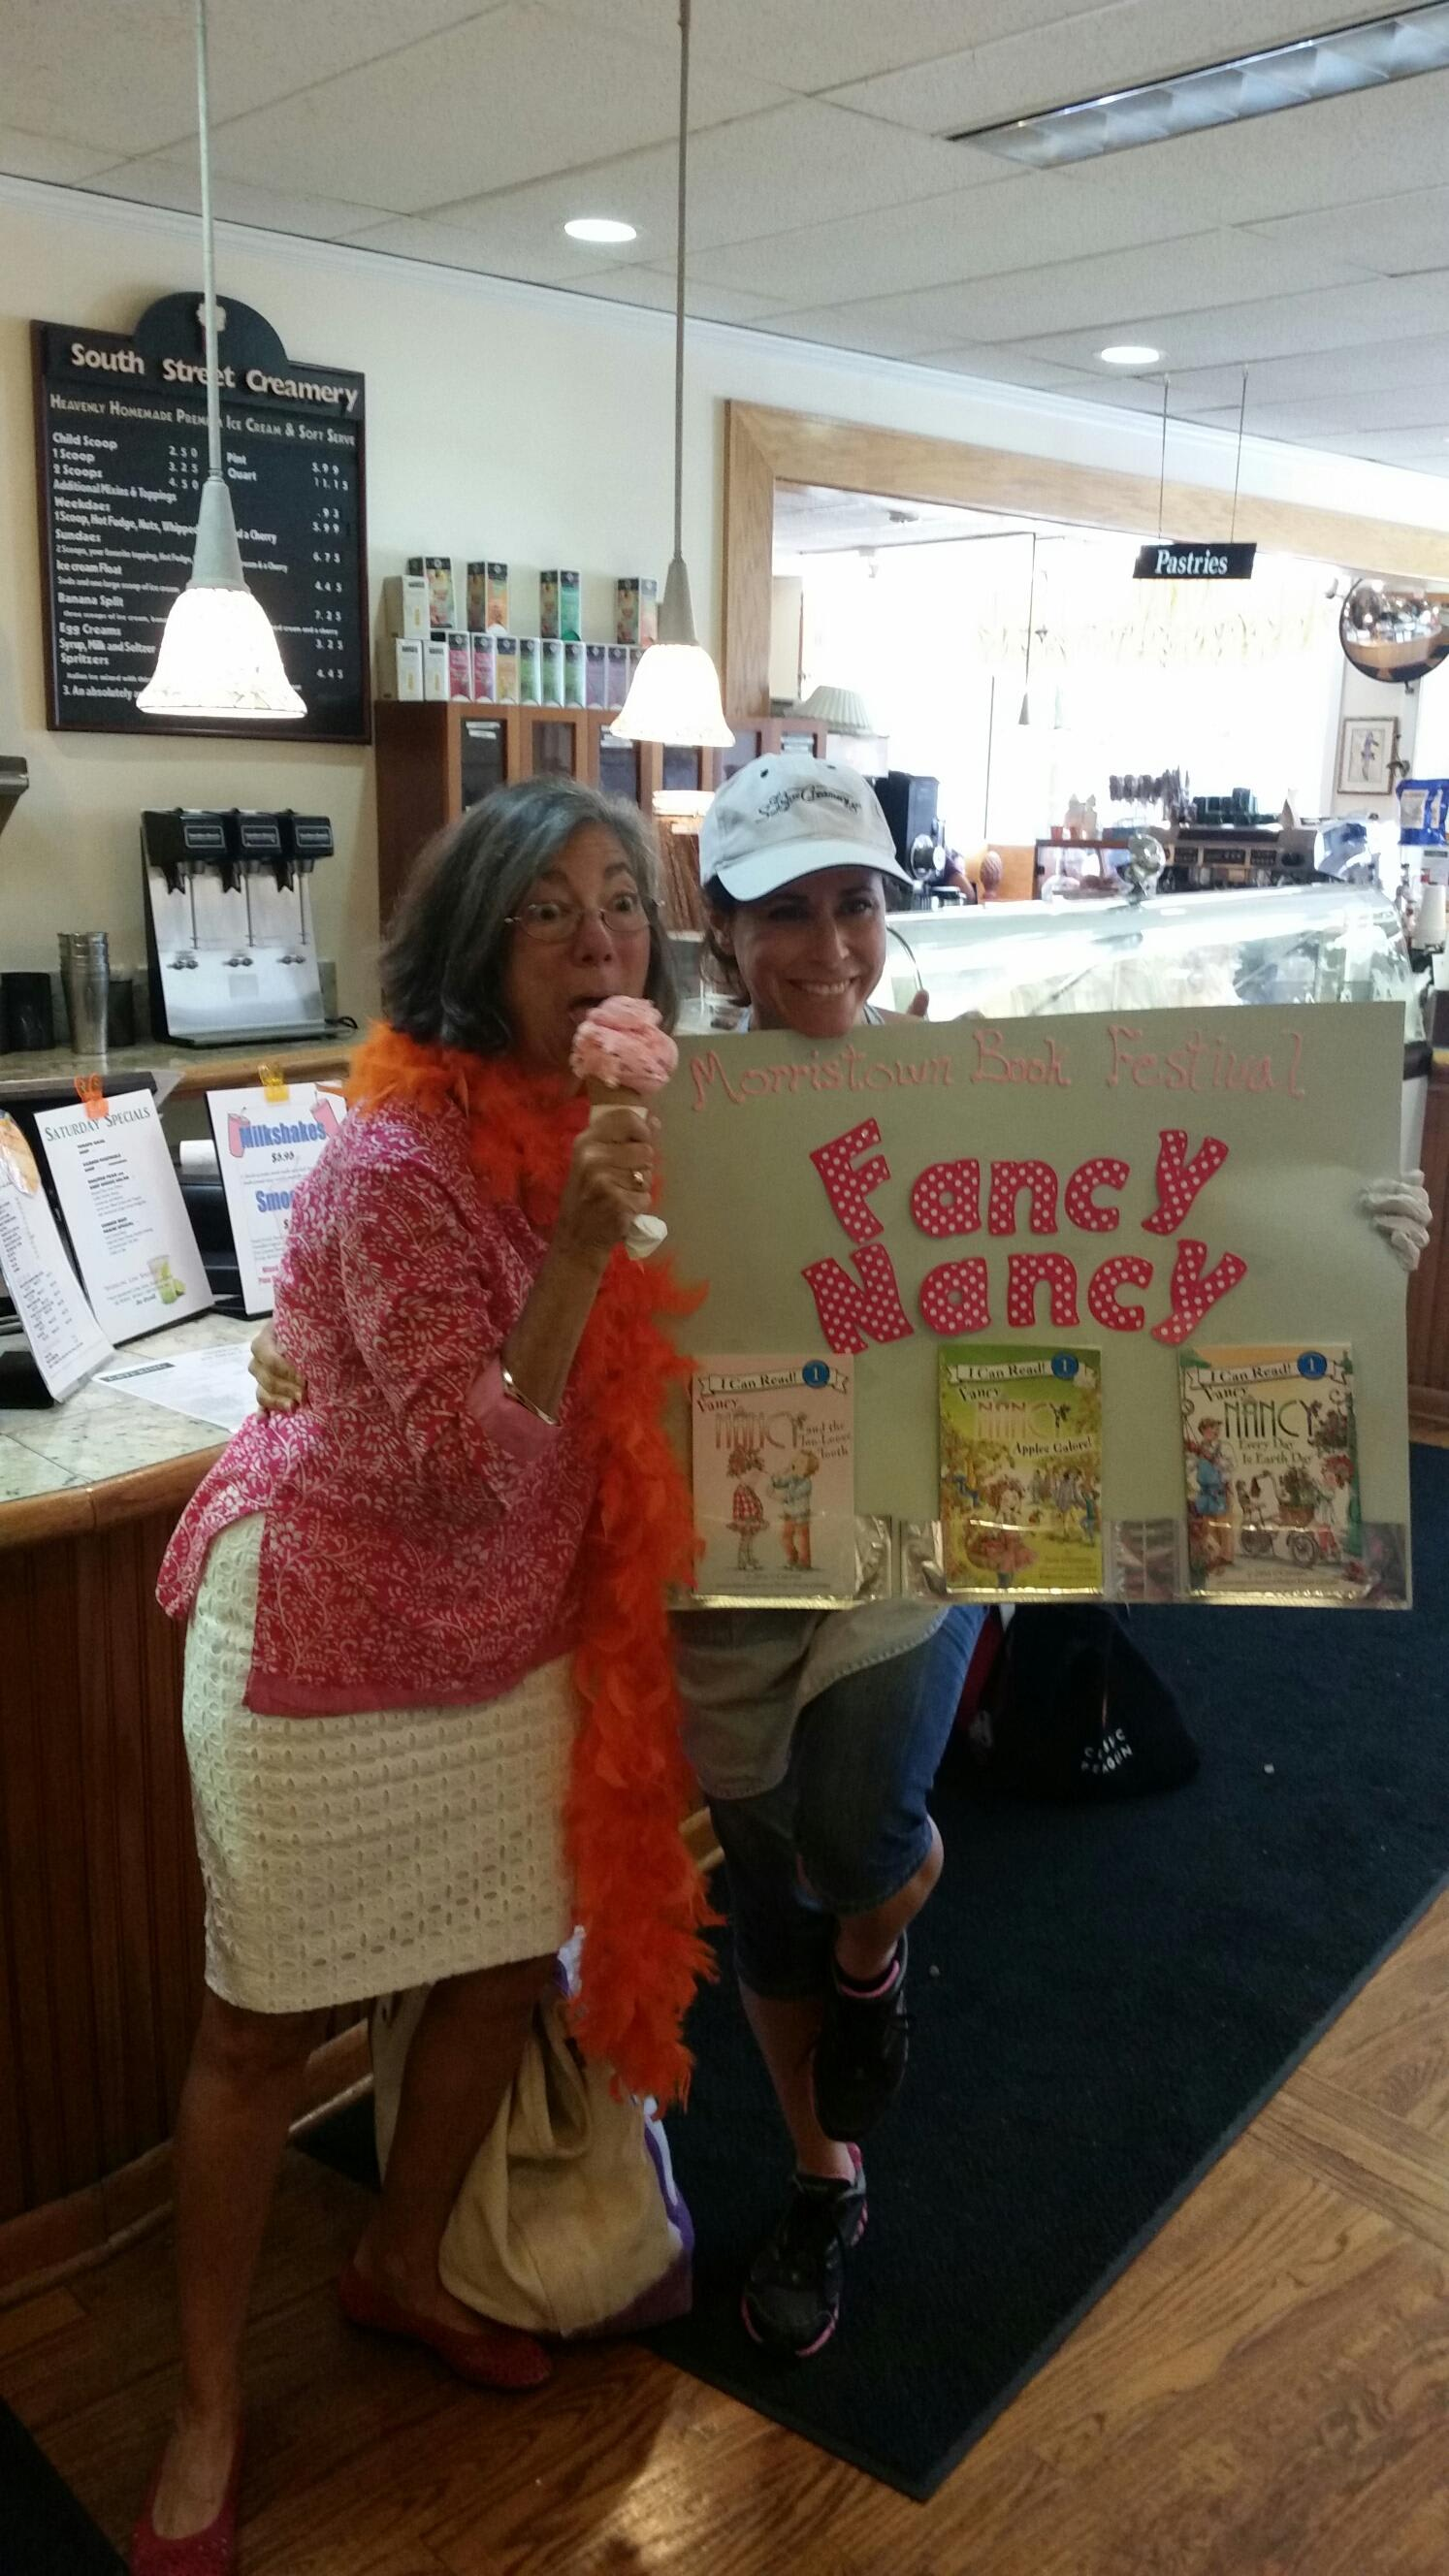 The Author of Fancy Nancy, Herself!!! at South Street Creamery Cafe